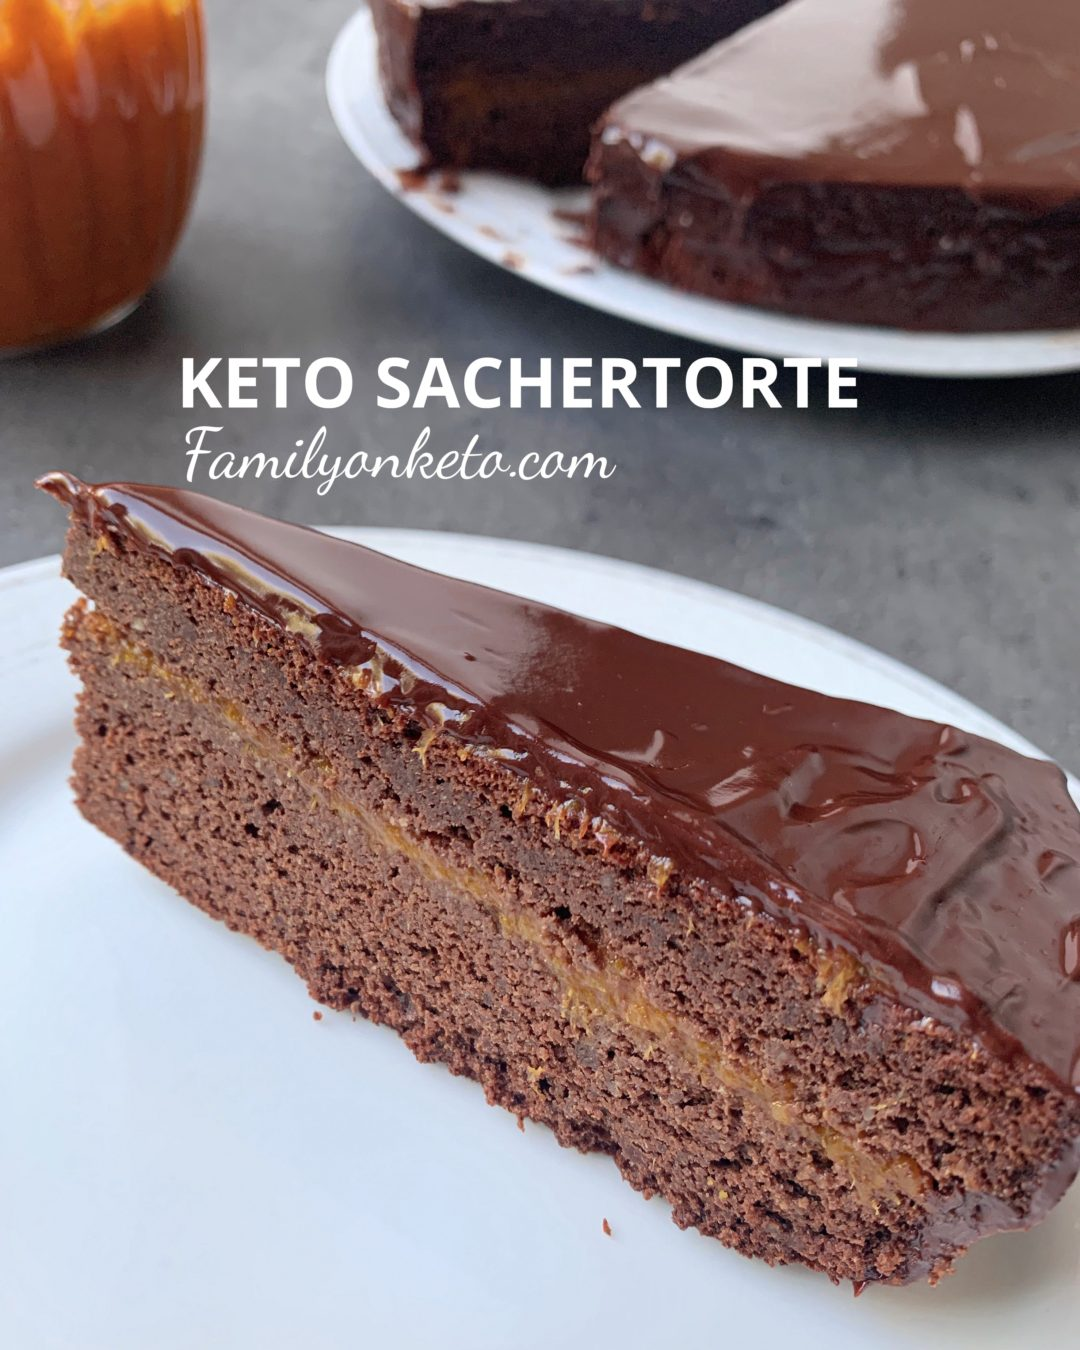 Picture of keto Sacher torte or low arb chocolate cake with apricot jam